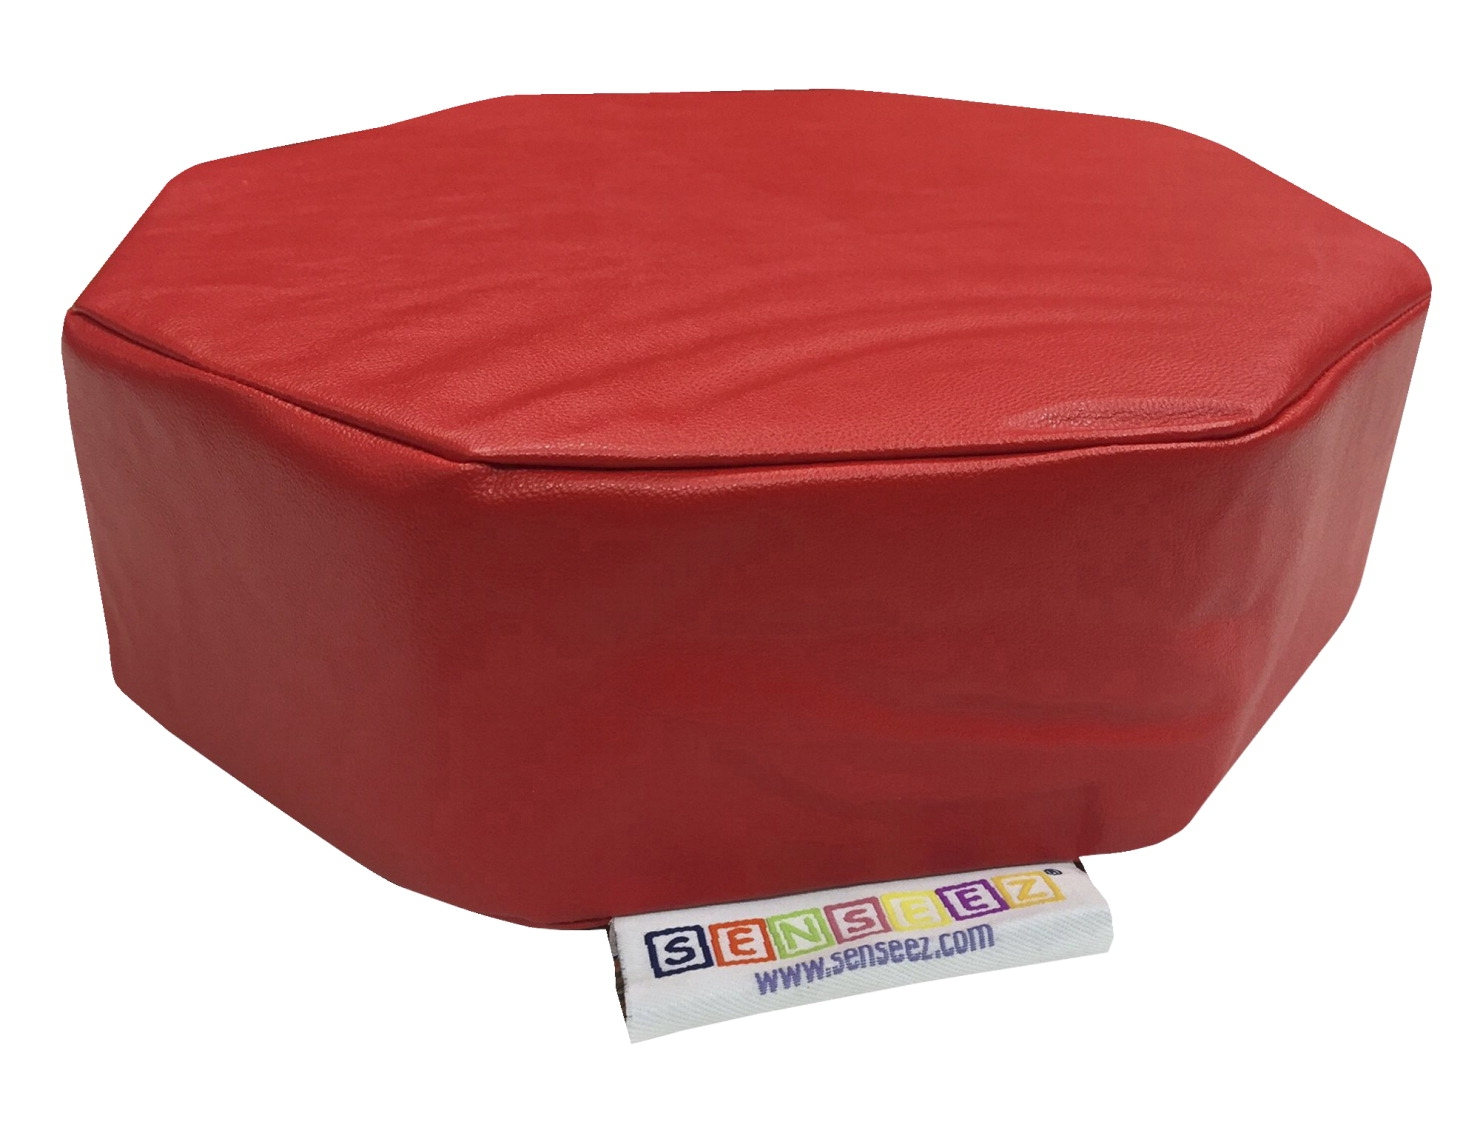 Senseez Vibrating Pillow; Red Octagon - 1580341 - Special Needs Sensory Processing Multi Sensory 1580341